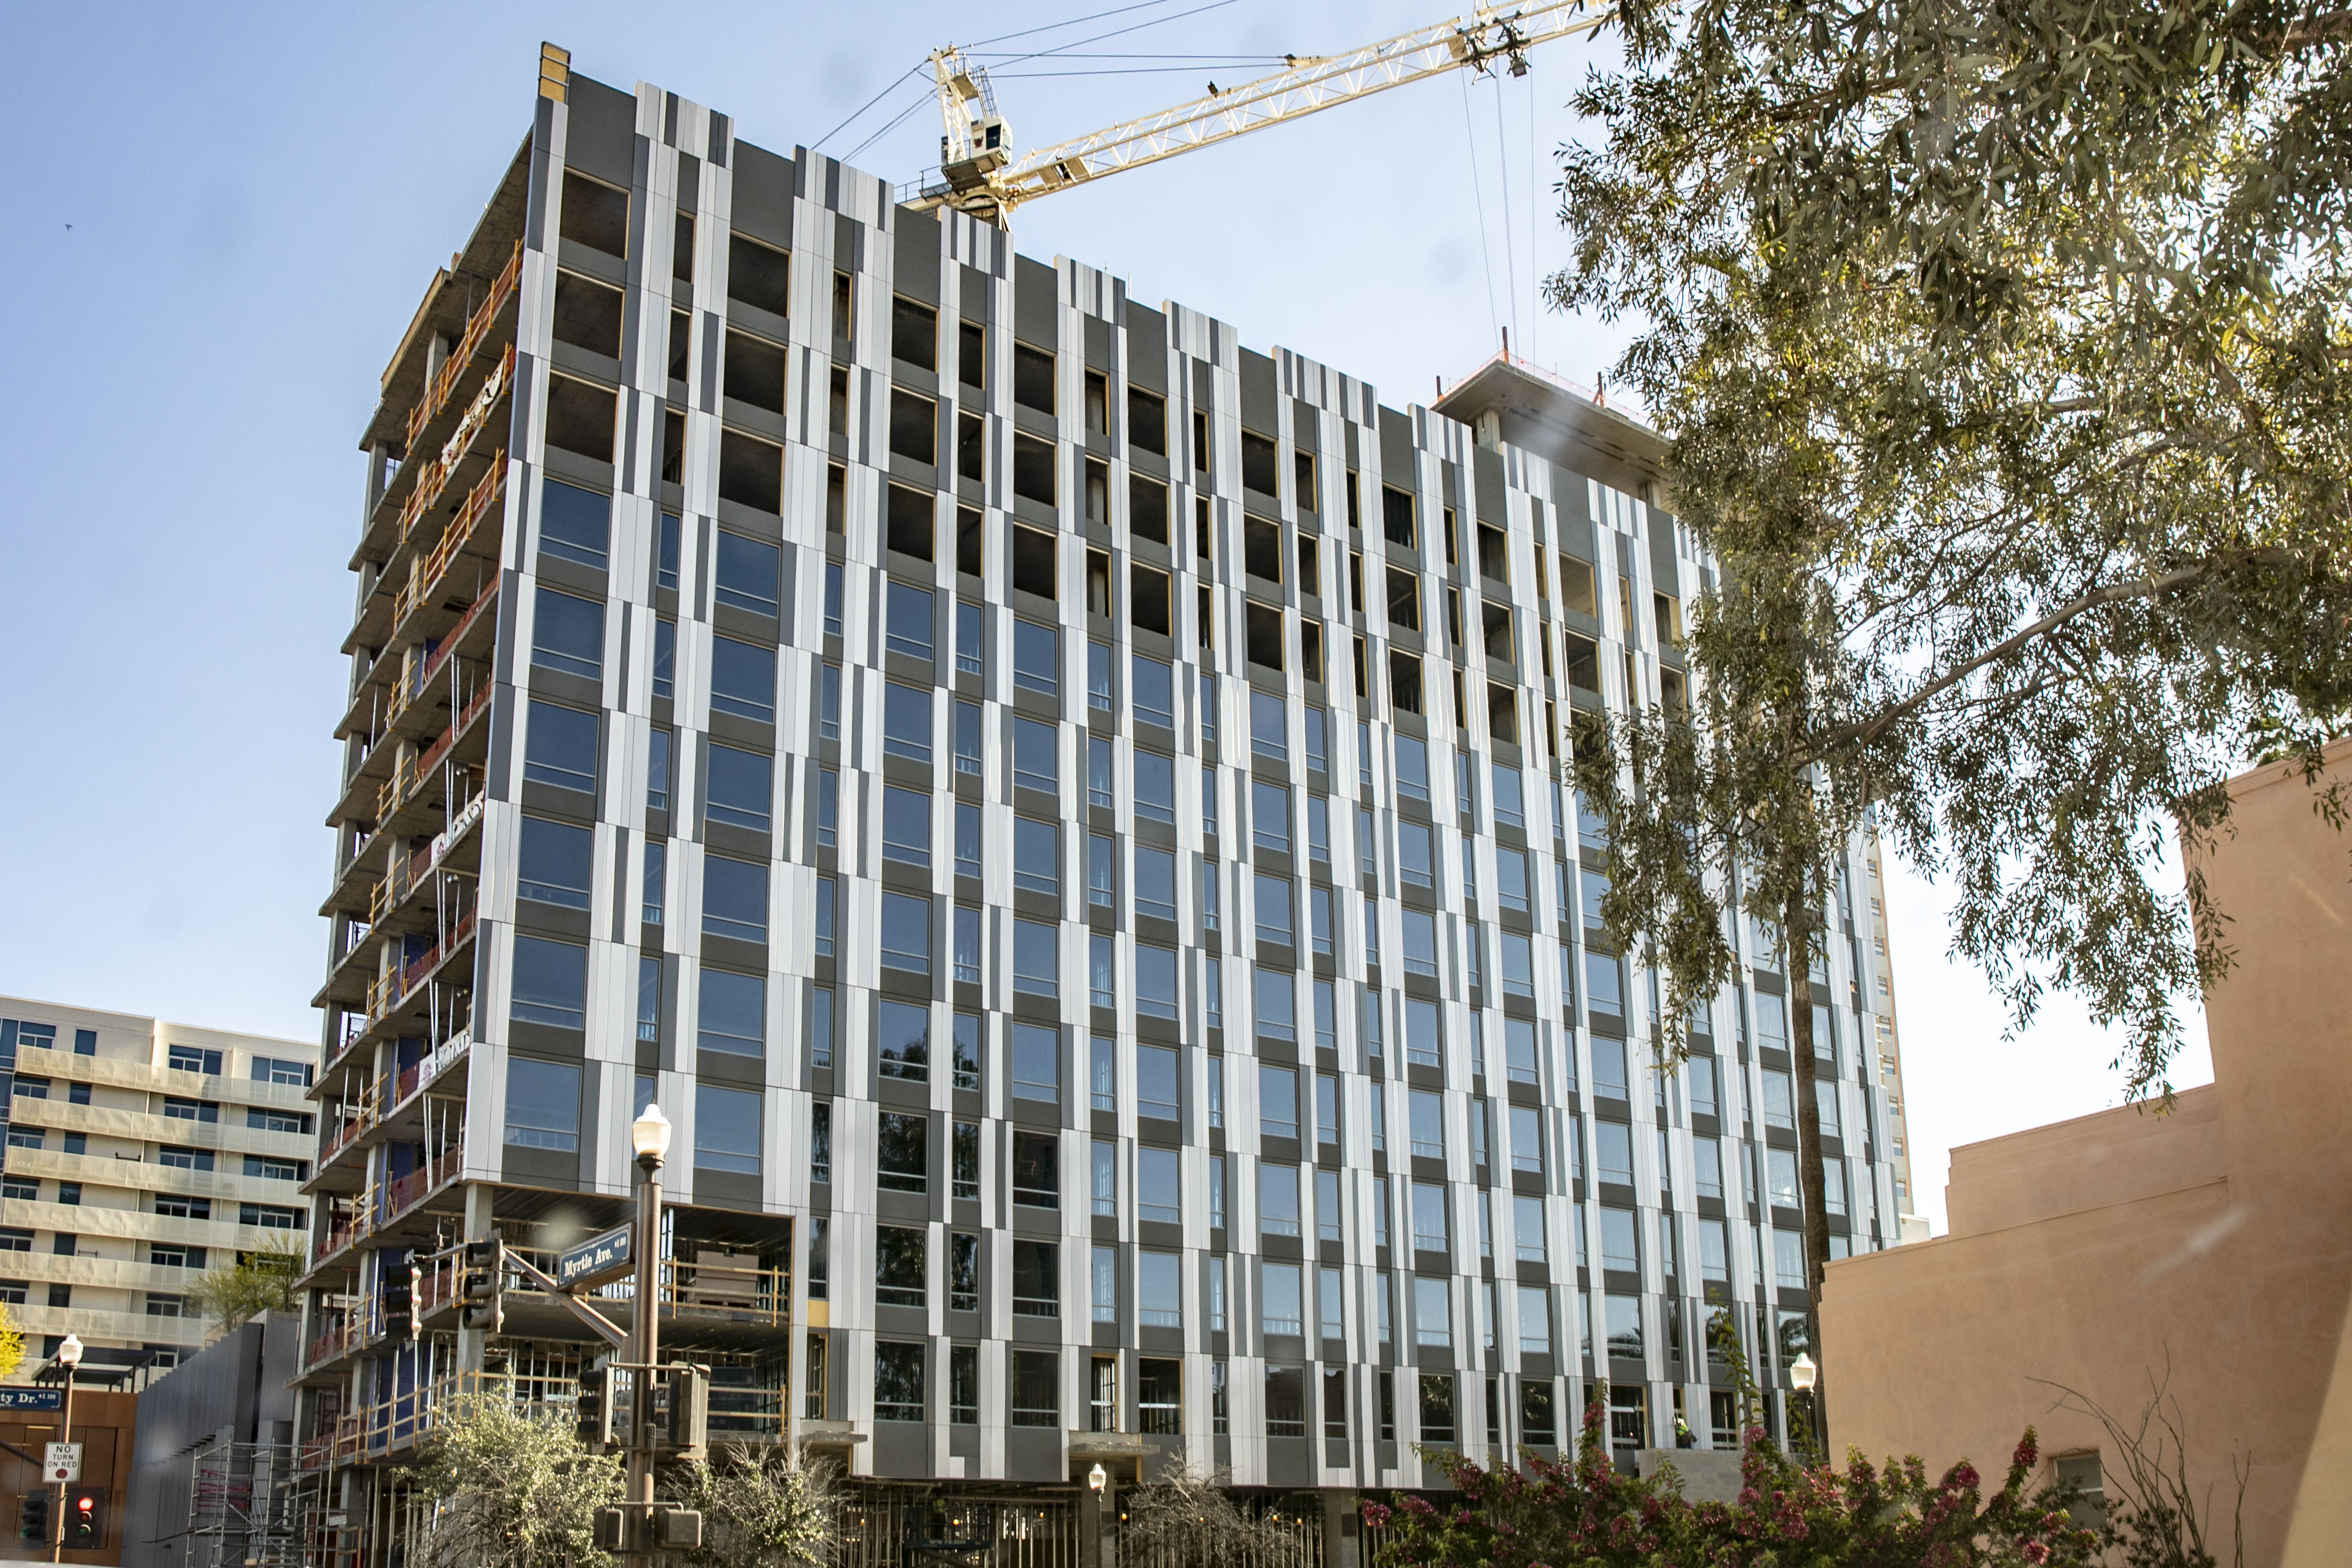 The Canopy by Hilton Tempe's south elevation panel installation is now complete, with windows installed up through level 10 and remaining windows on Levels 11 to 13 scheduled to complete next week.